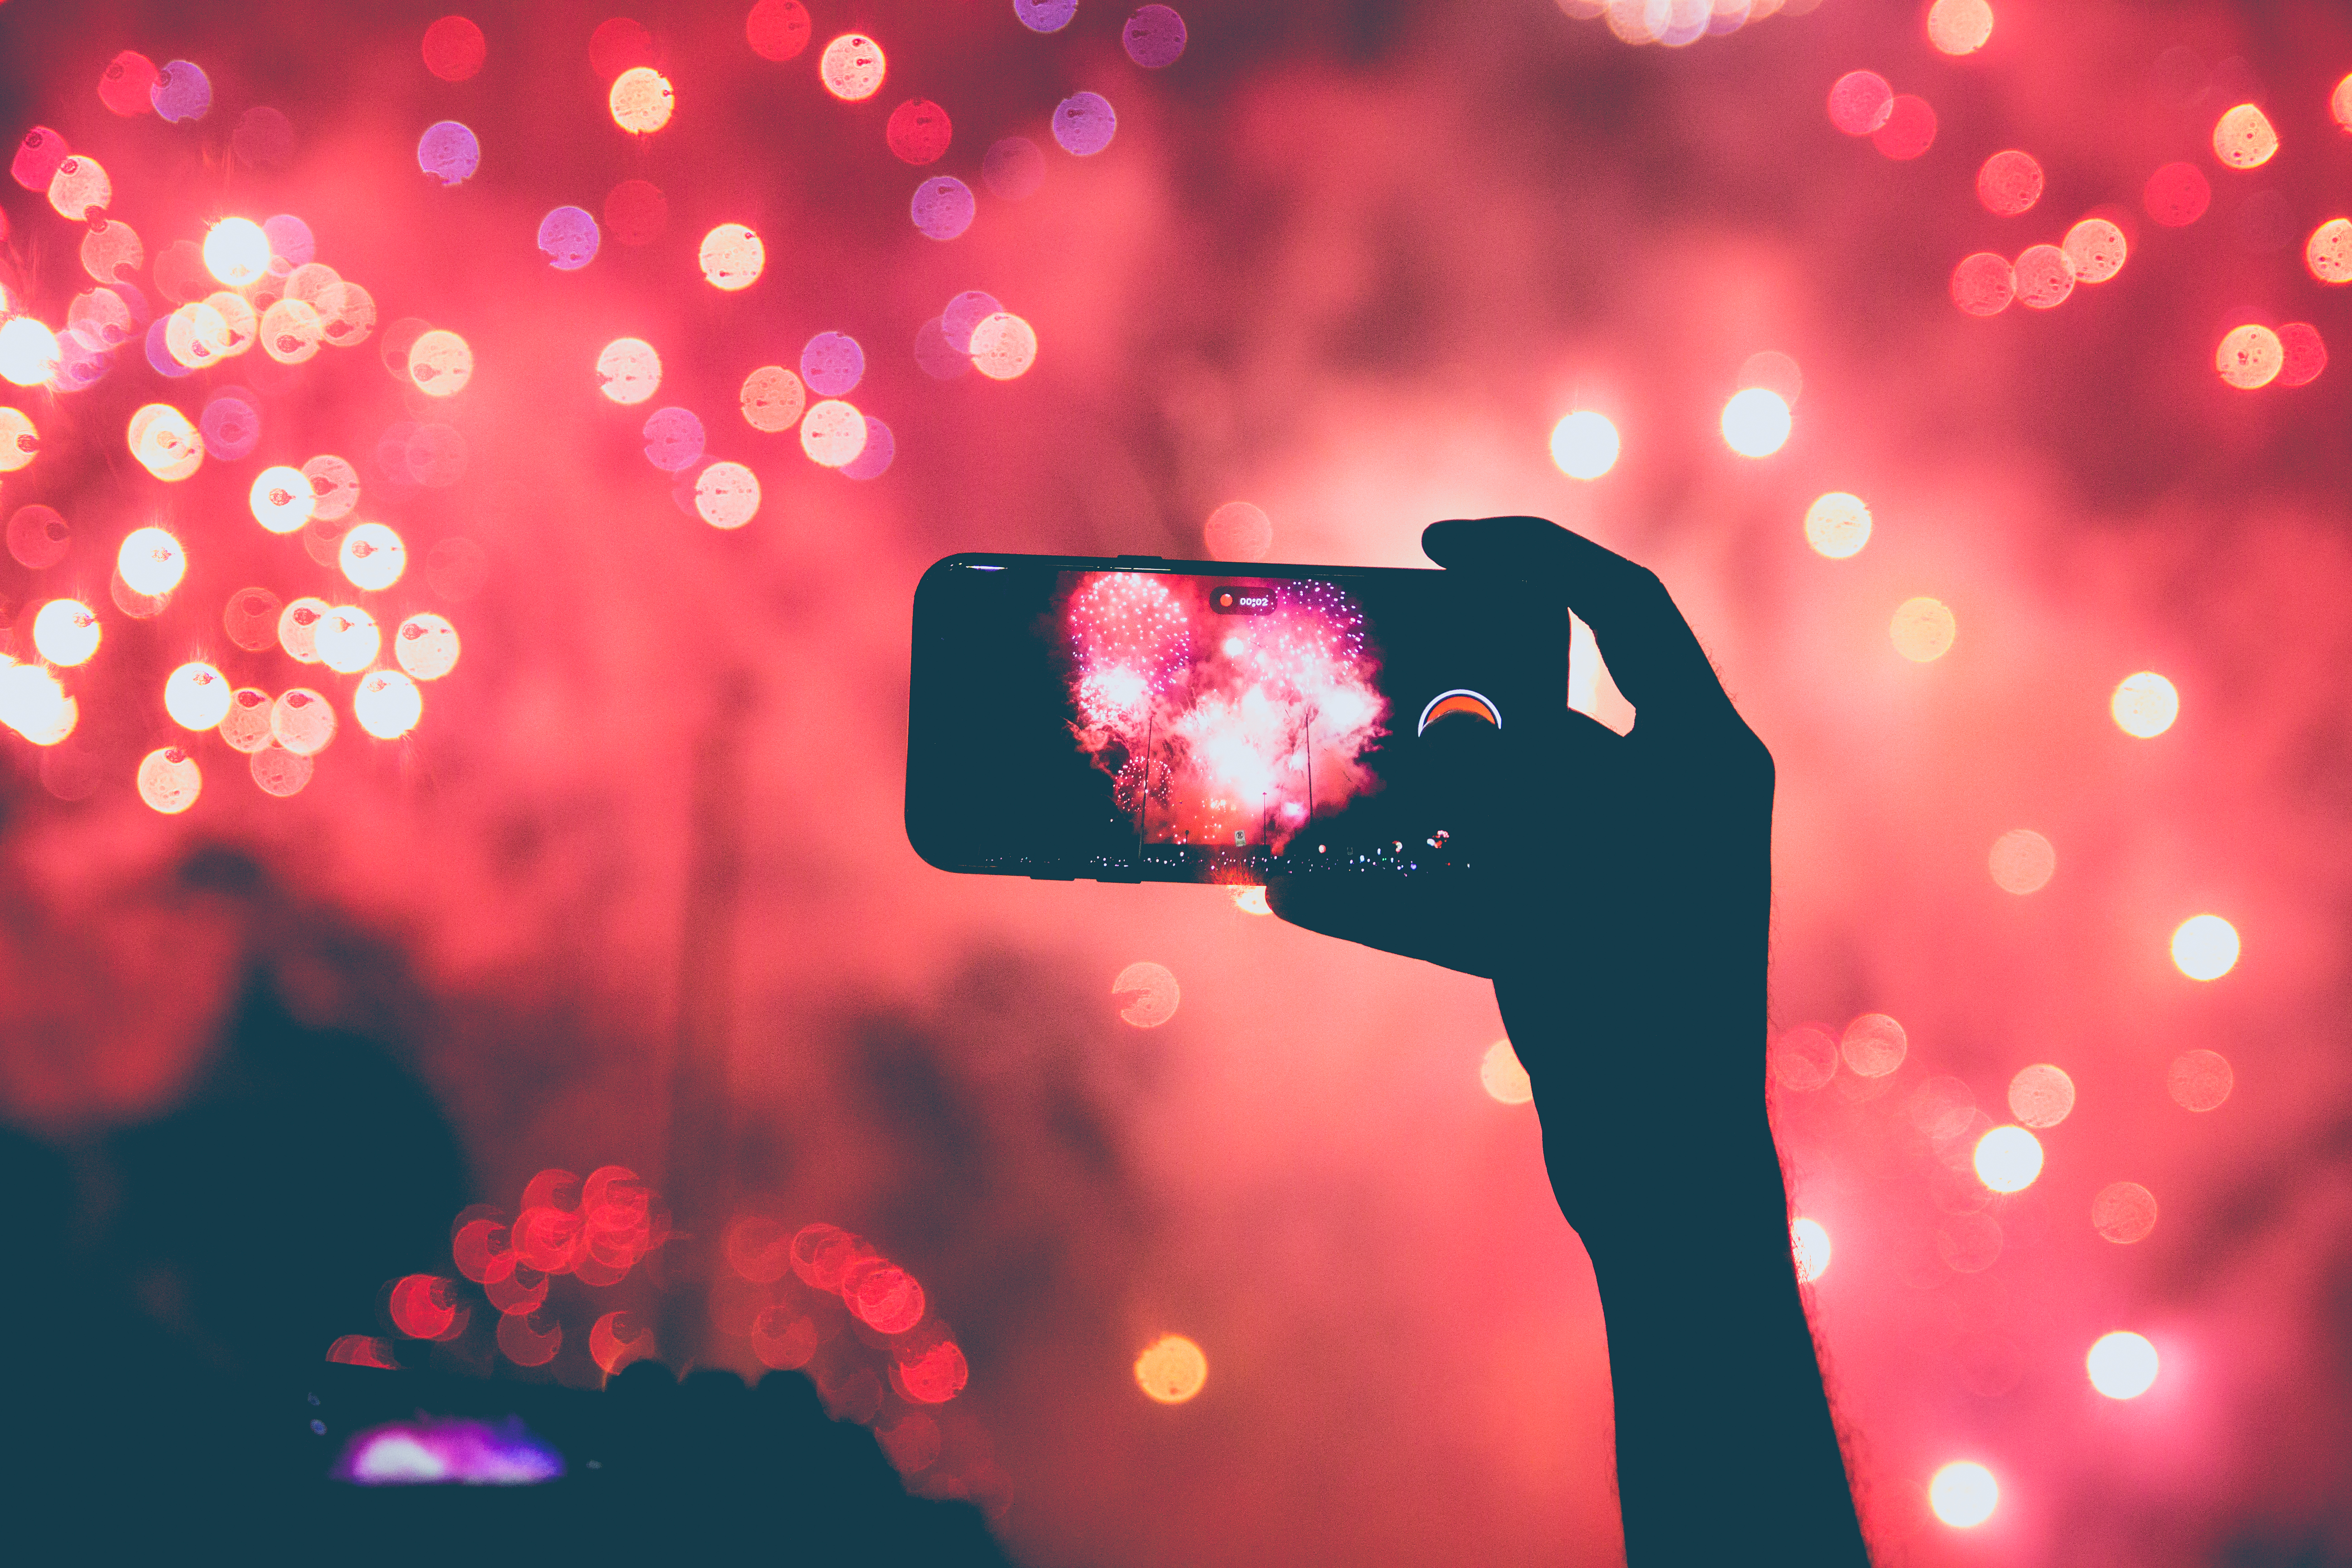 Phone and fireworks